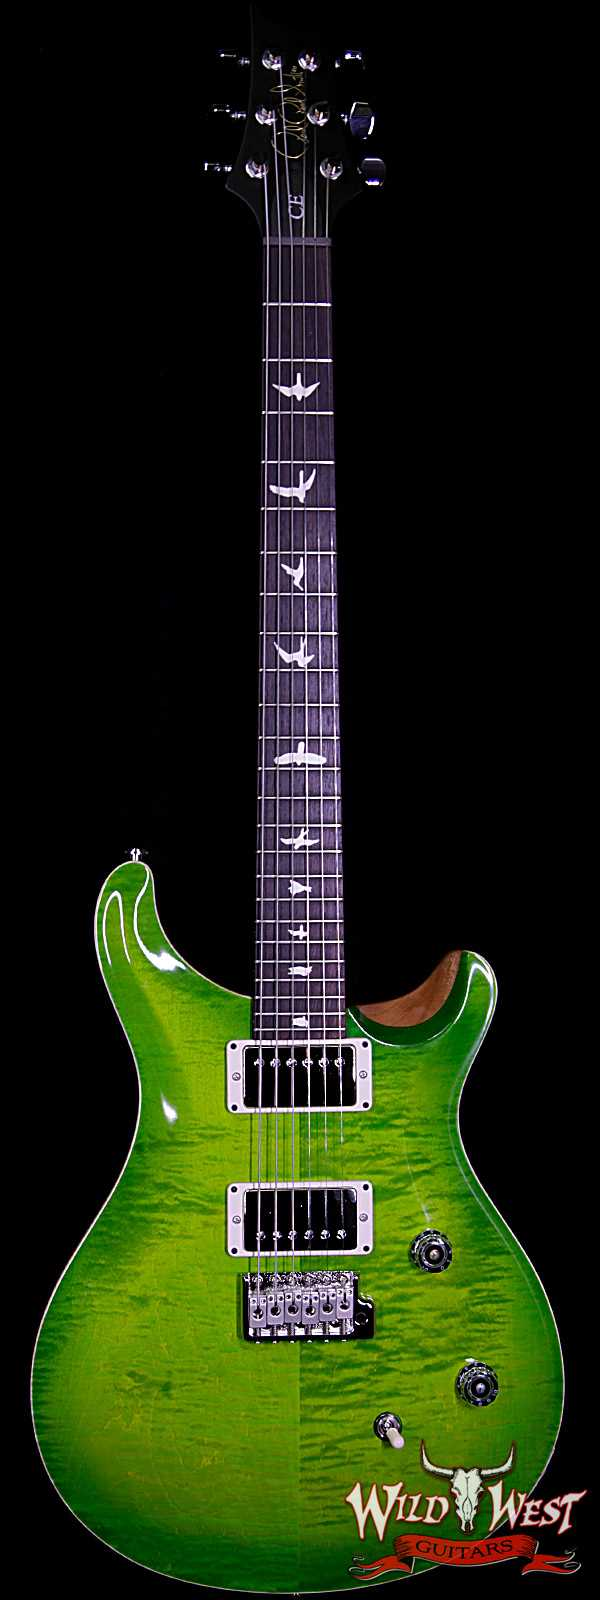 Paul Reed Smith PRS Wild West Guitars Special Run CE 24 Flame Top 57/08 Pickups Eriza Verde 253201